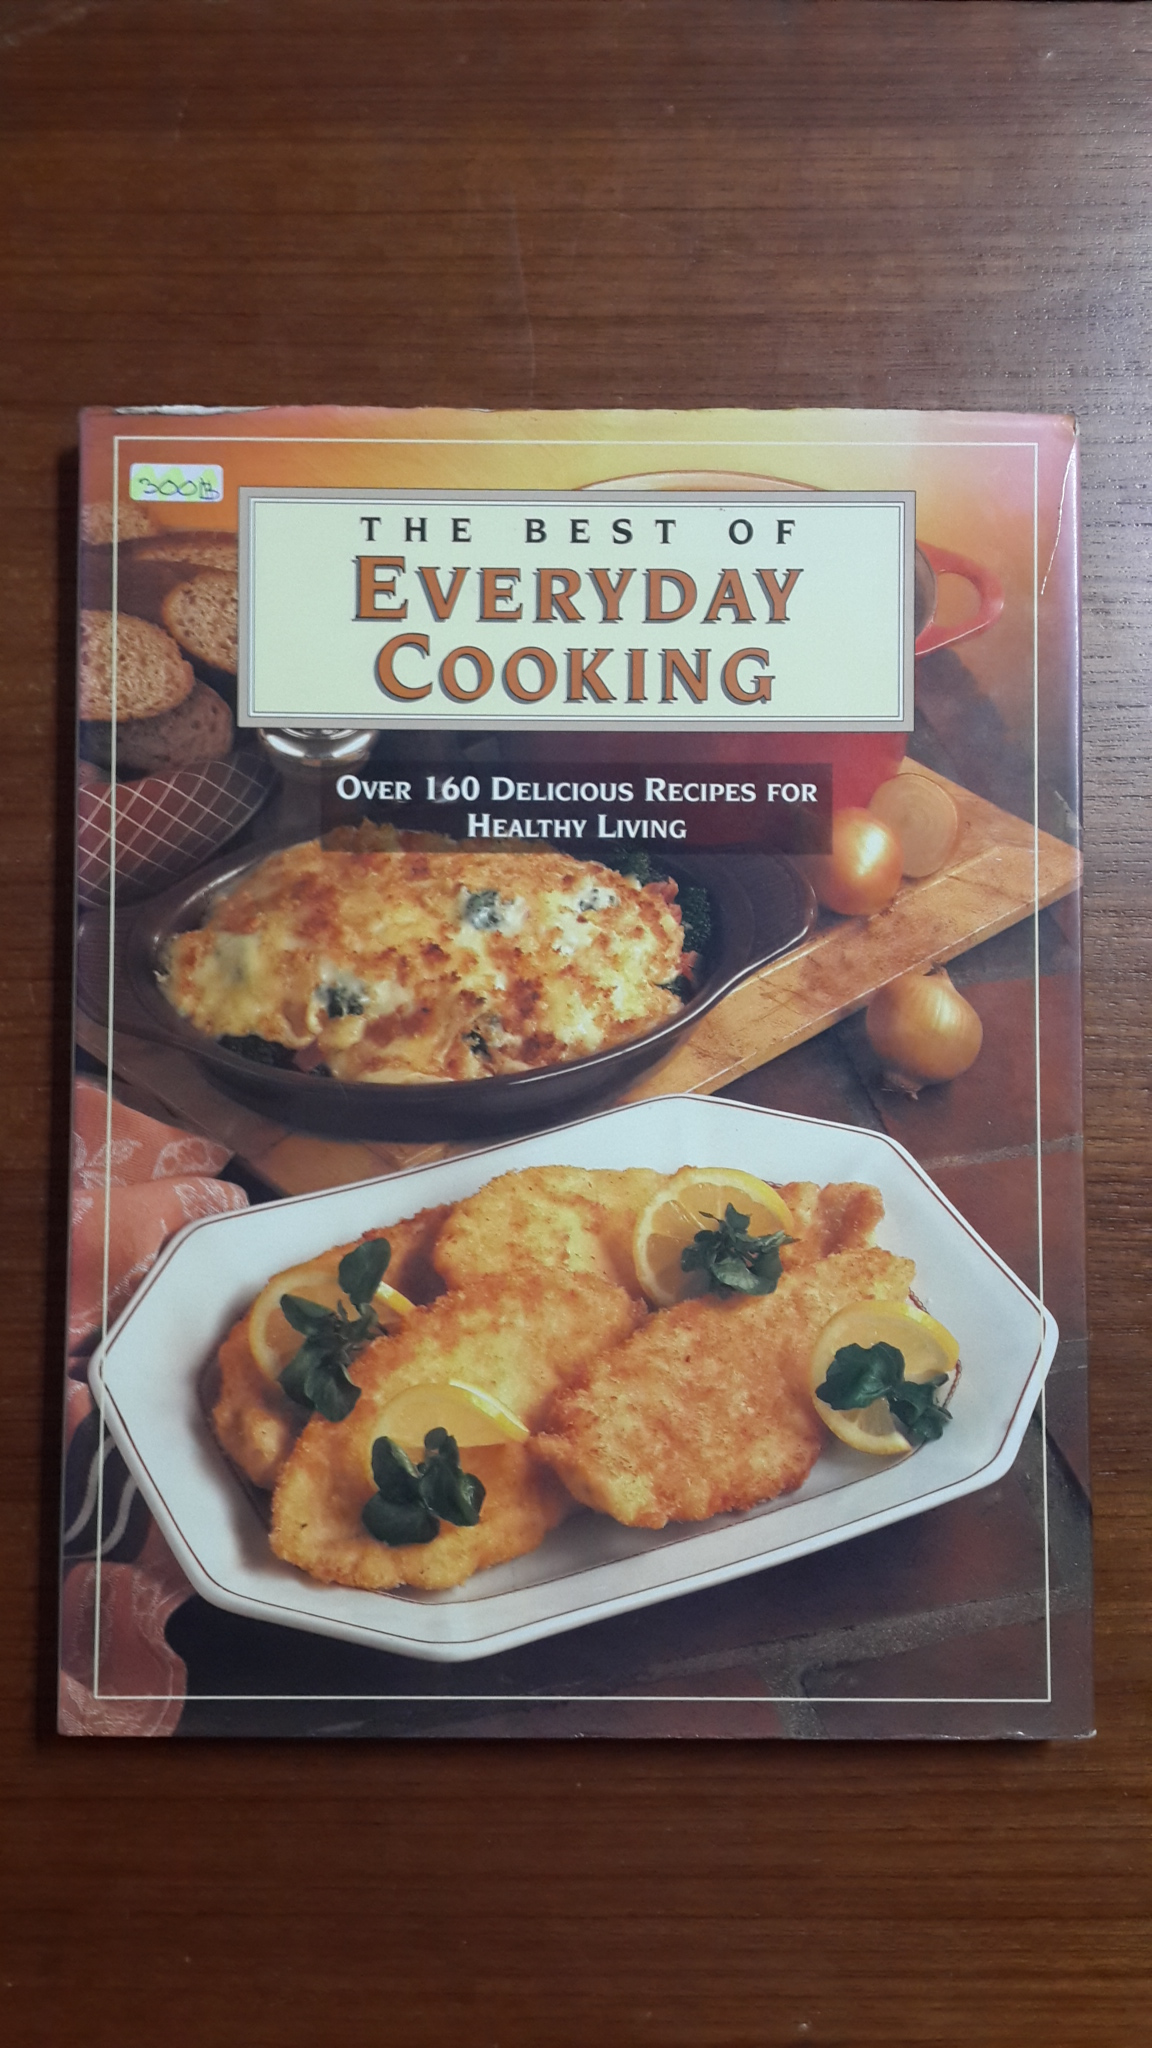 THE BEST OF EVERYDAY COOKING